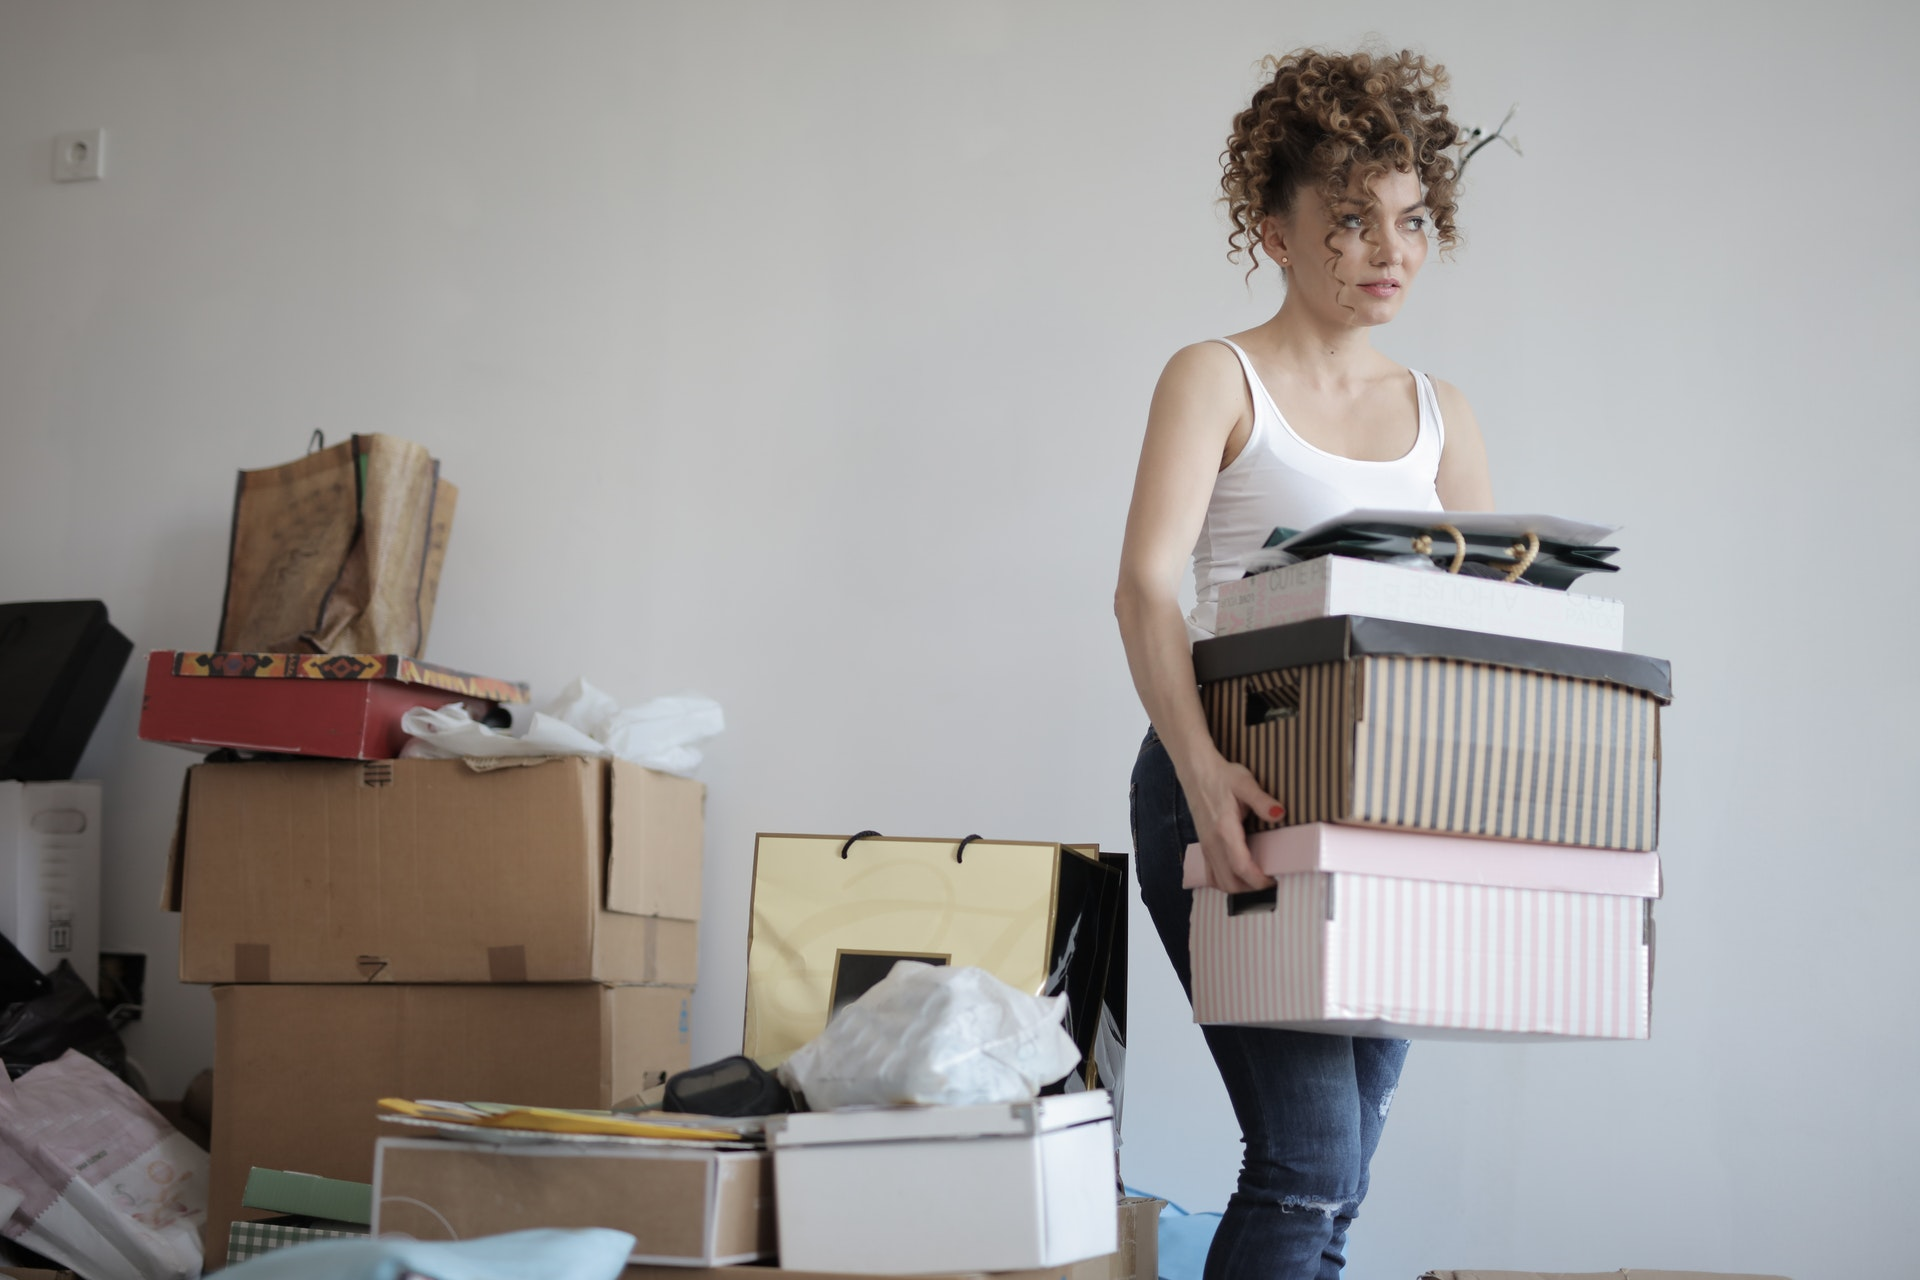 Woman carrying boxes with boxes in background